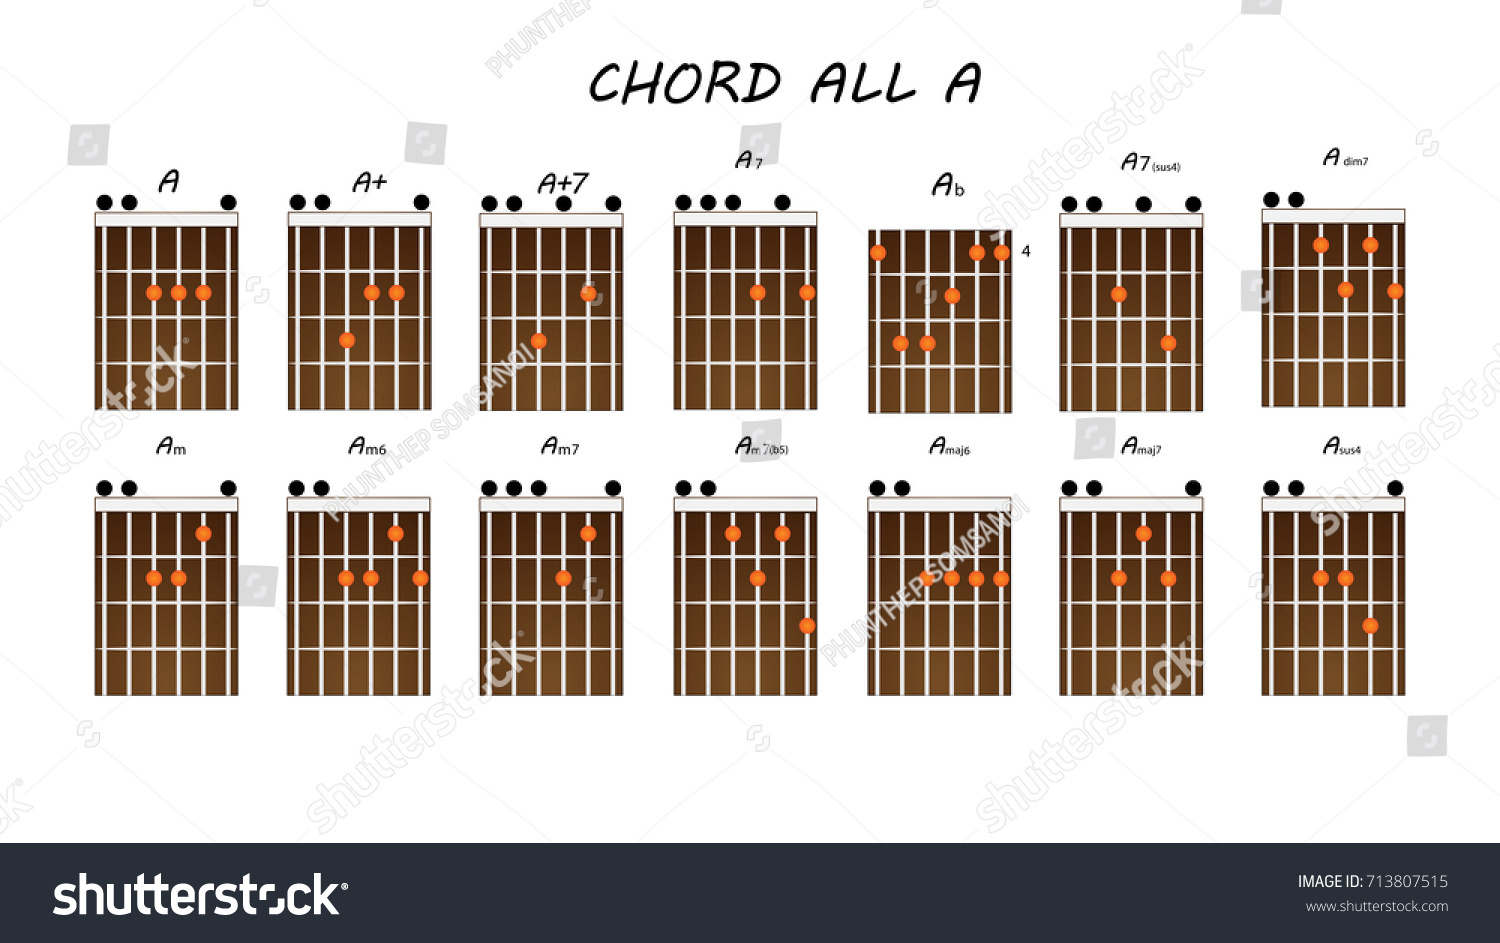 Table Chord Guitar Chords A Stock Vector Royalty Free 713807515